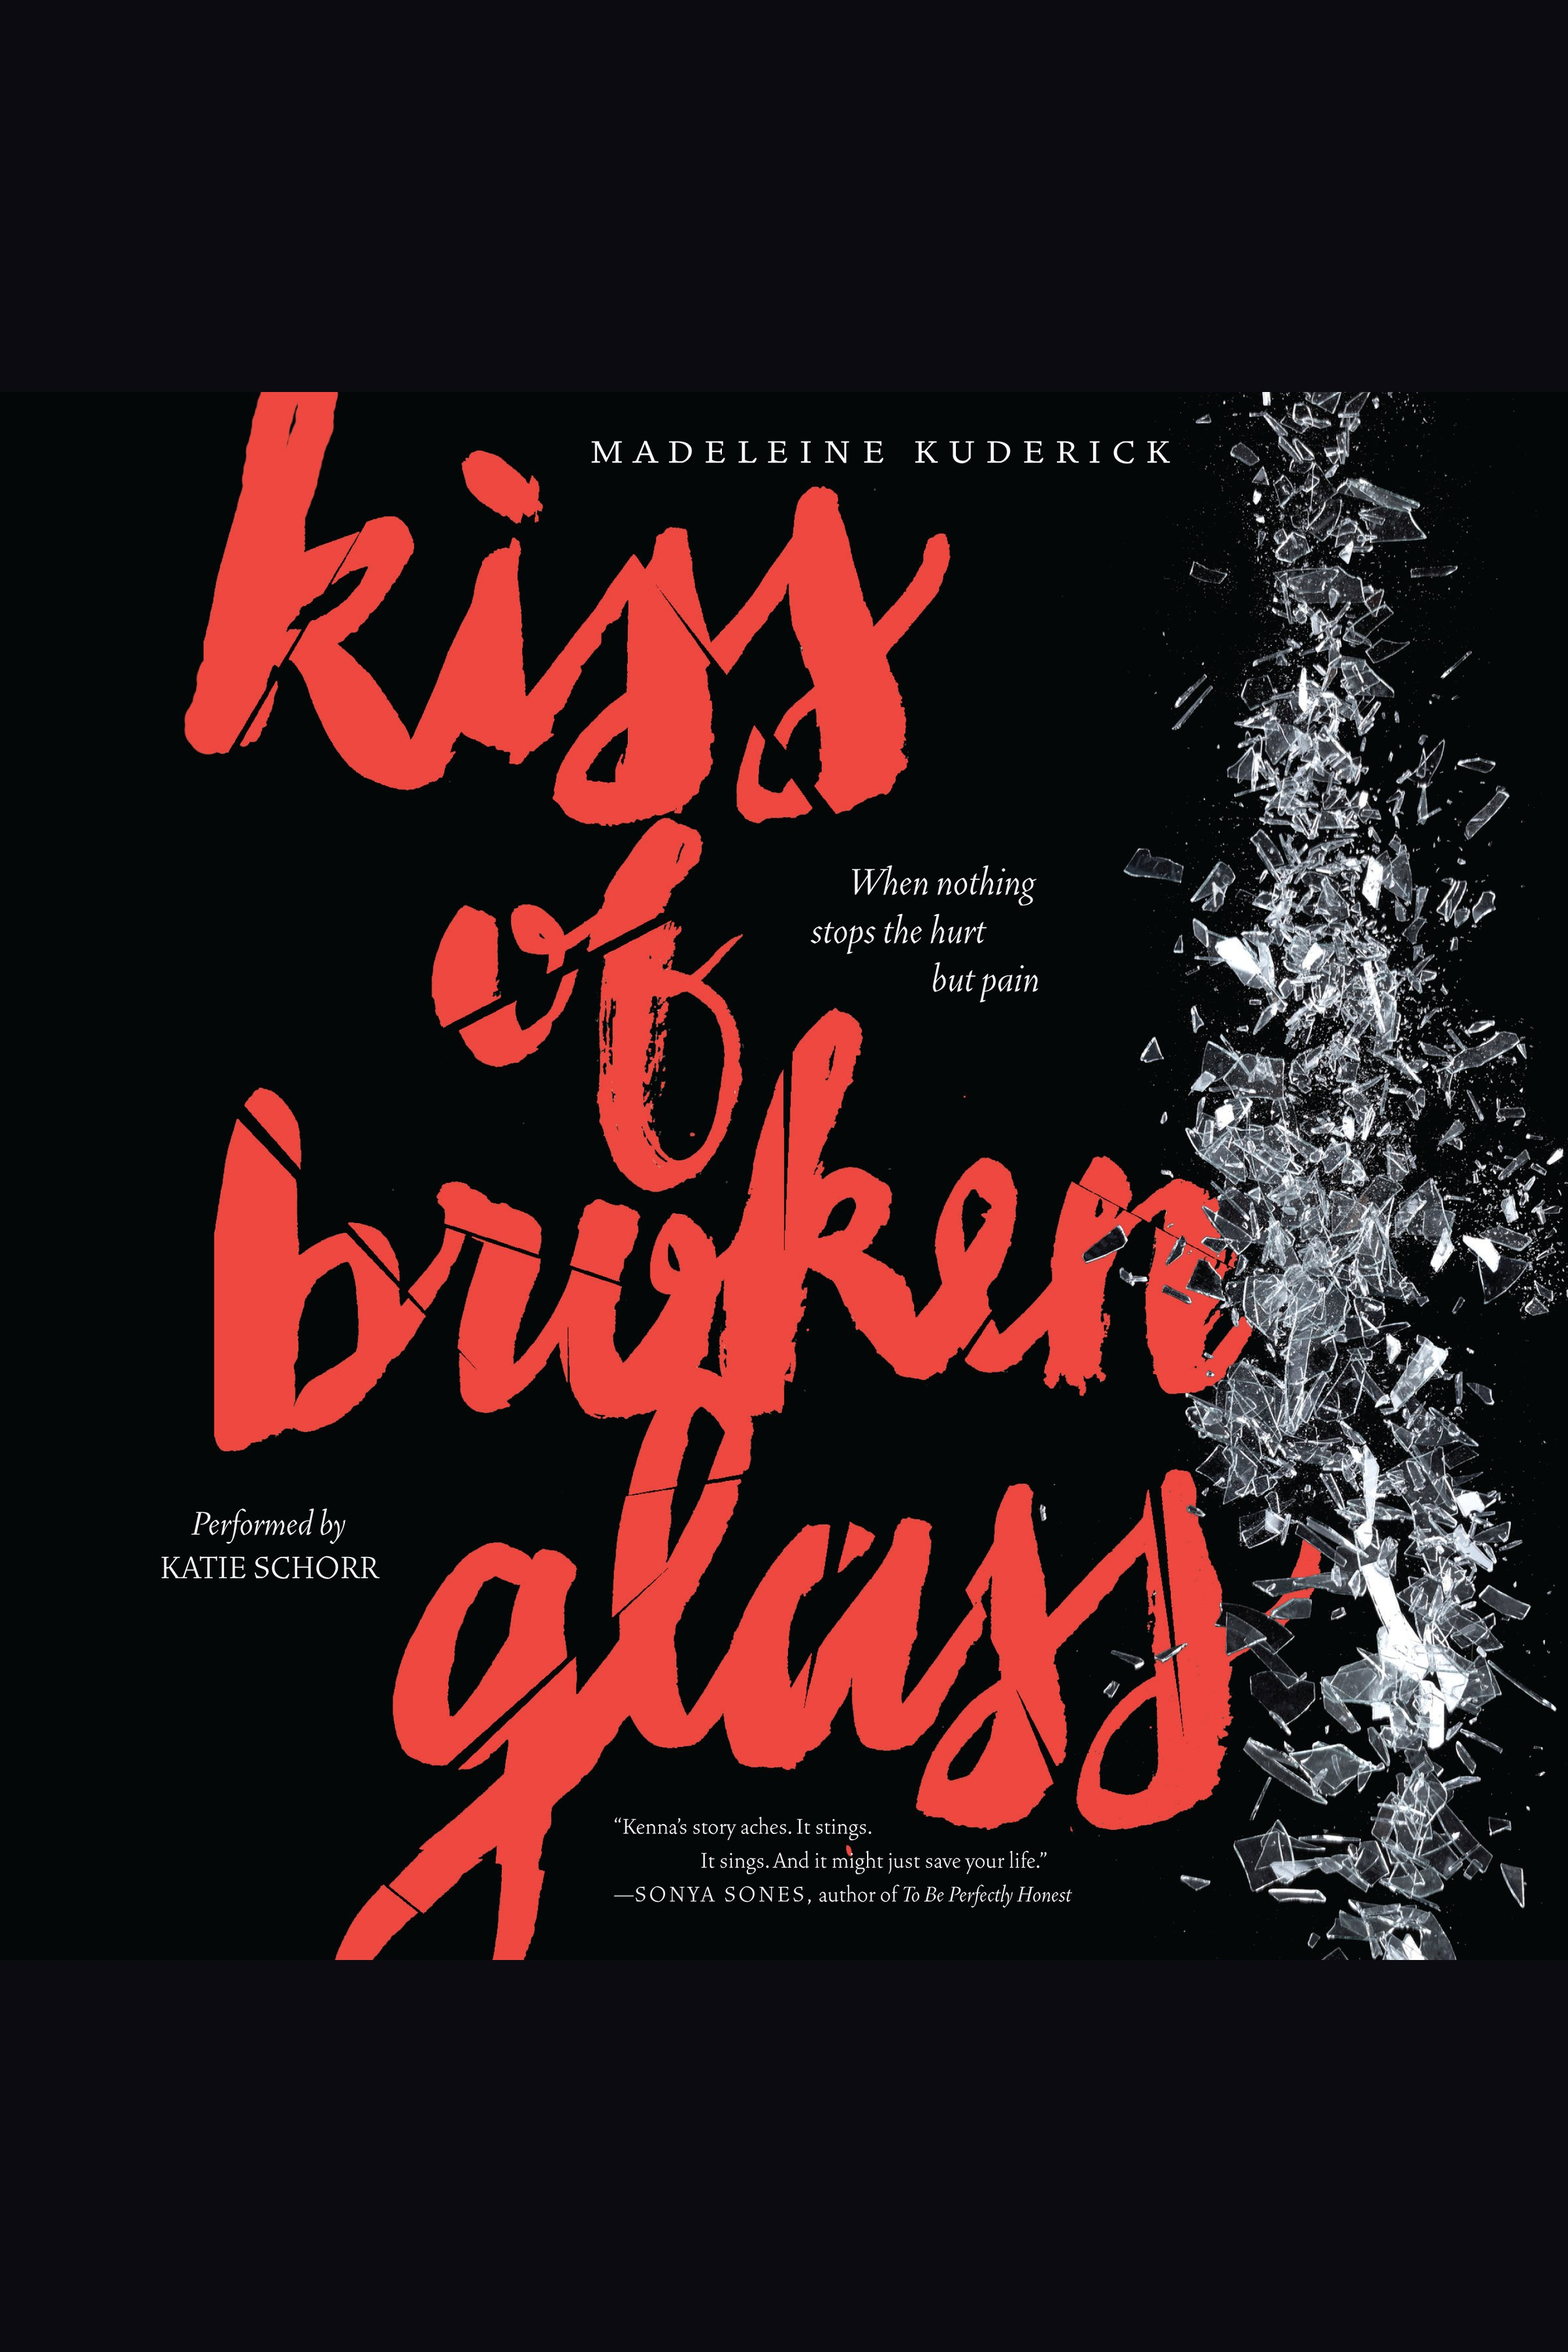 Kiss of broken glass cover image